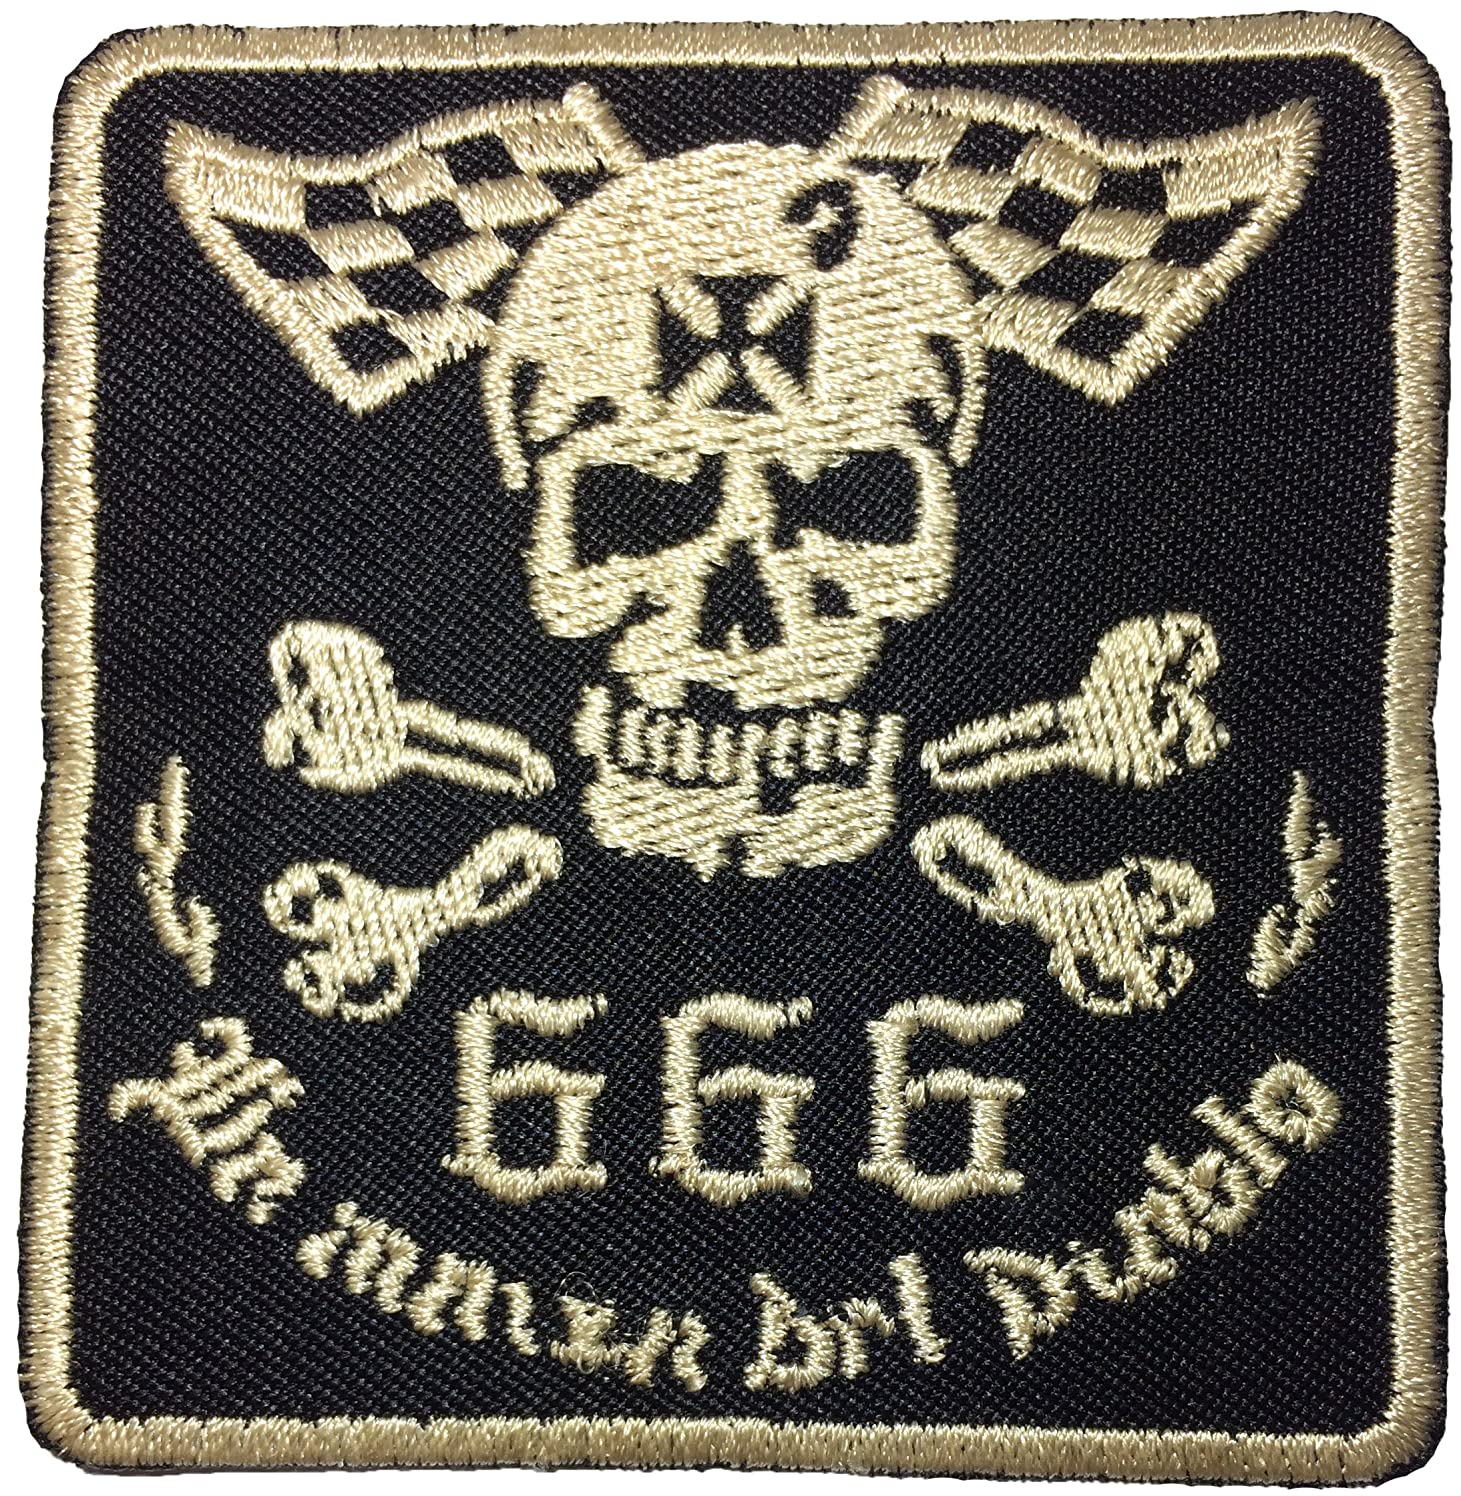 Papapatch Number Evil Satan Checkered Flag Skull Cross Bone Sew on Iron on Embroidered Applique Patch (IRON-NUMBER-SATAN)